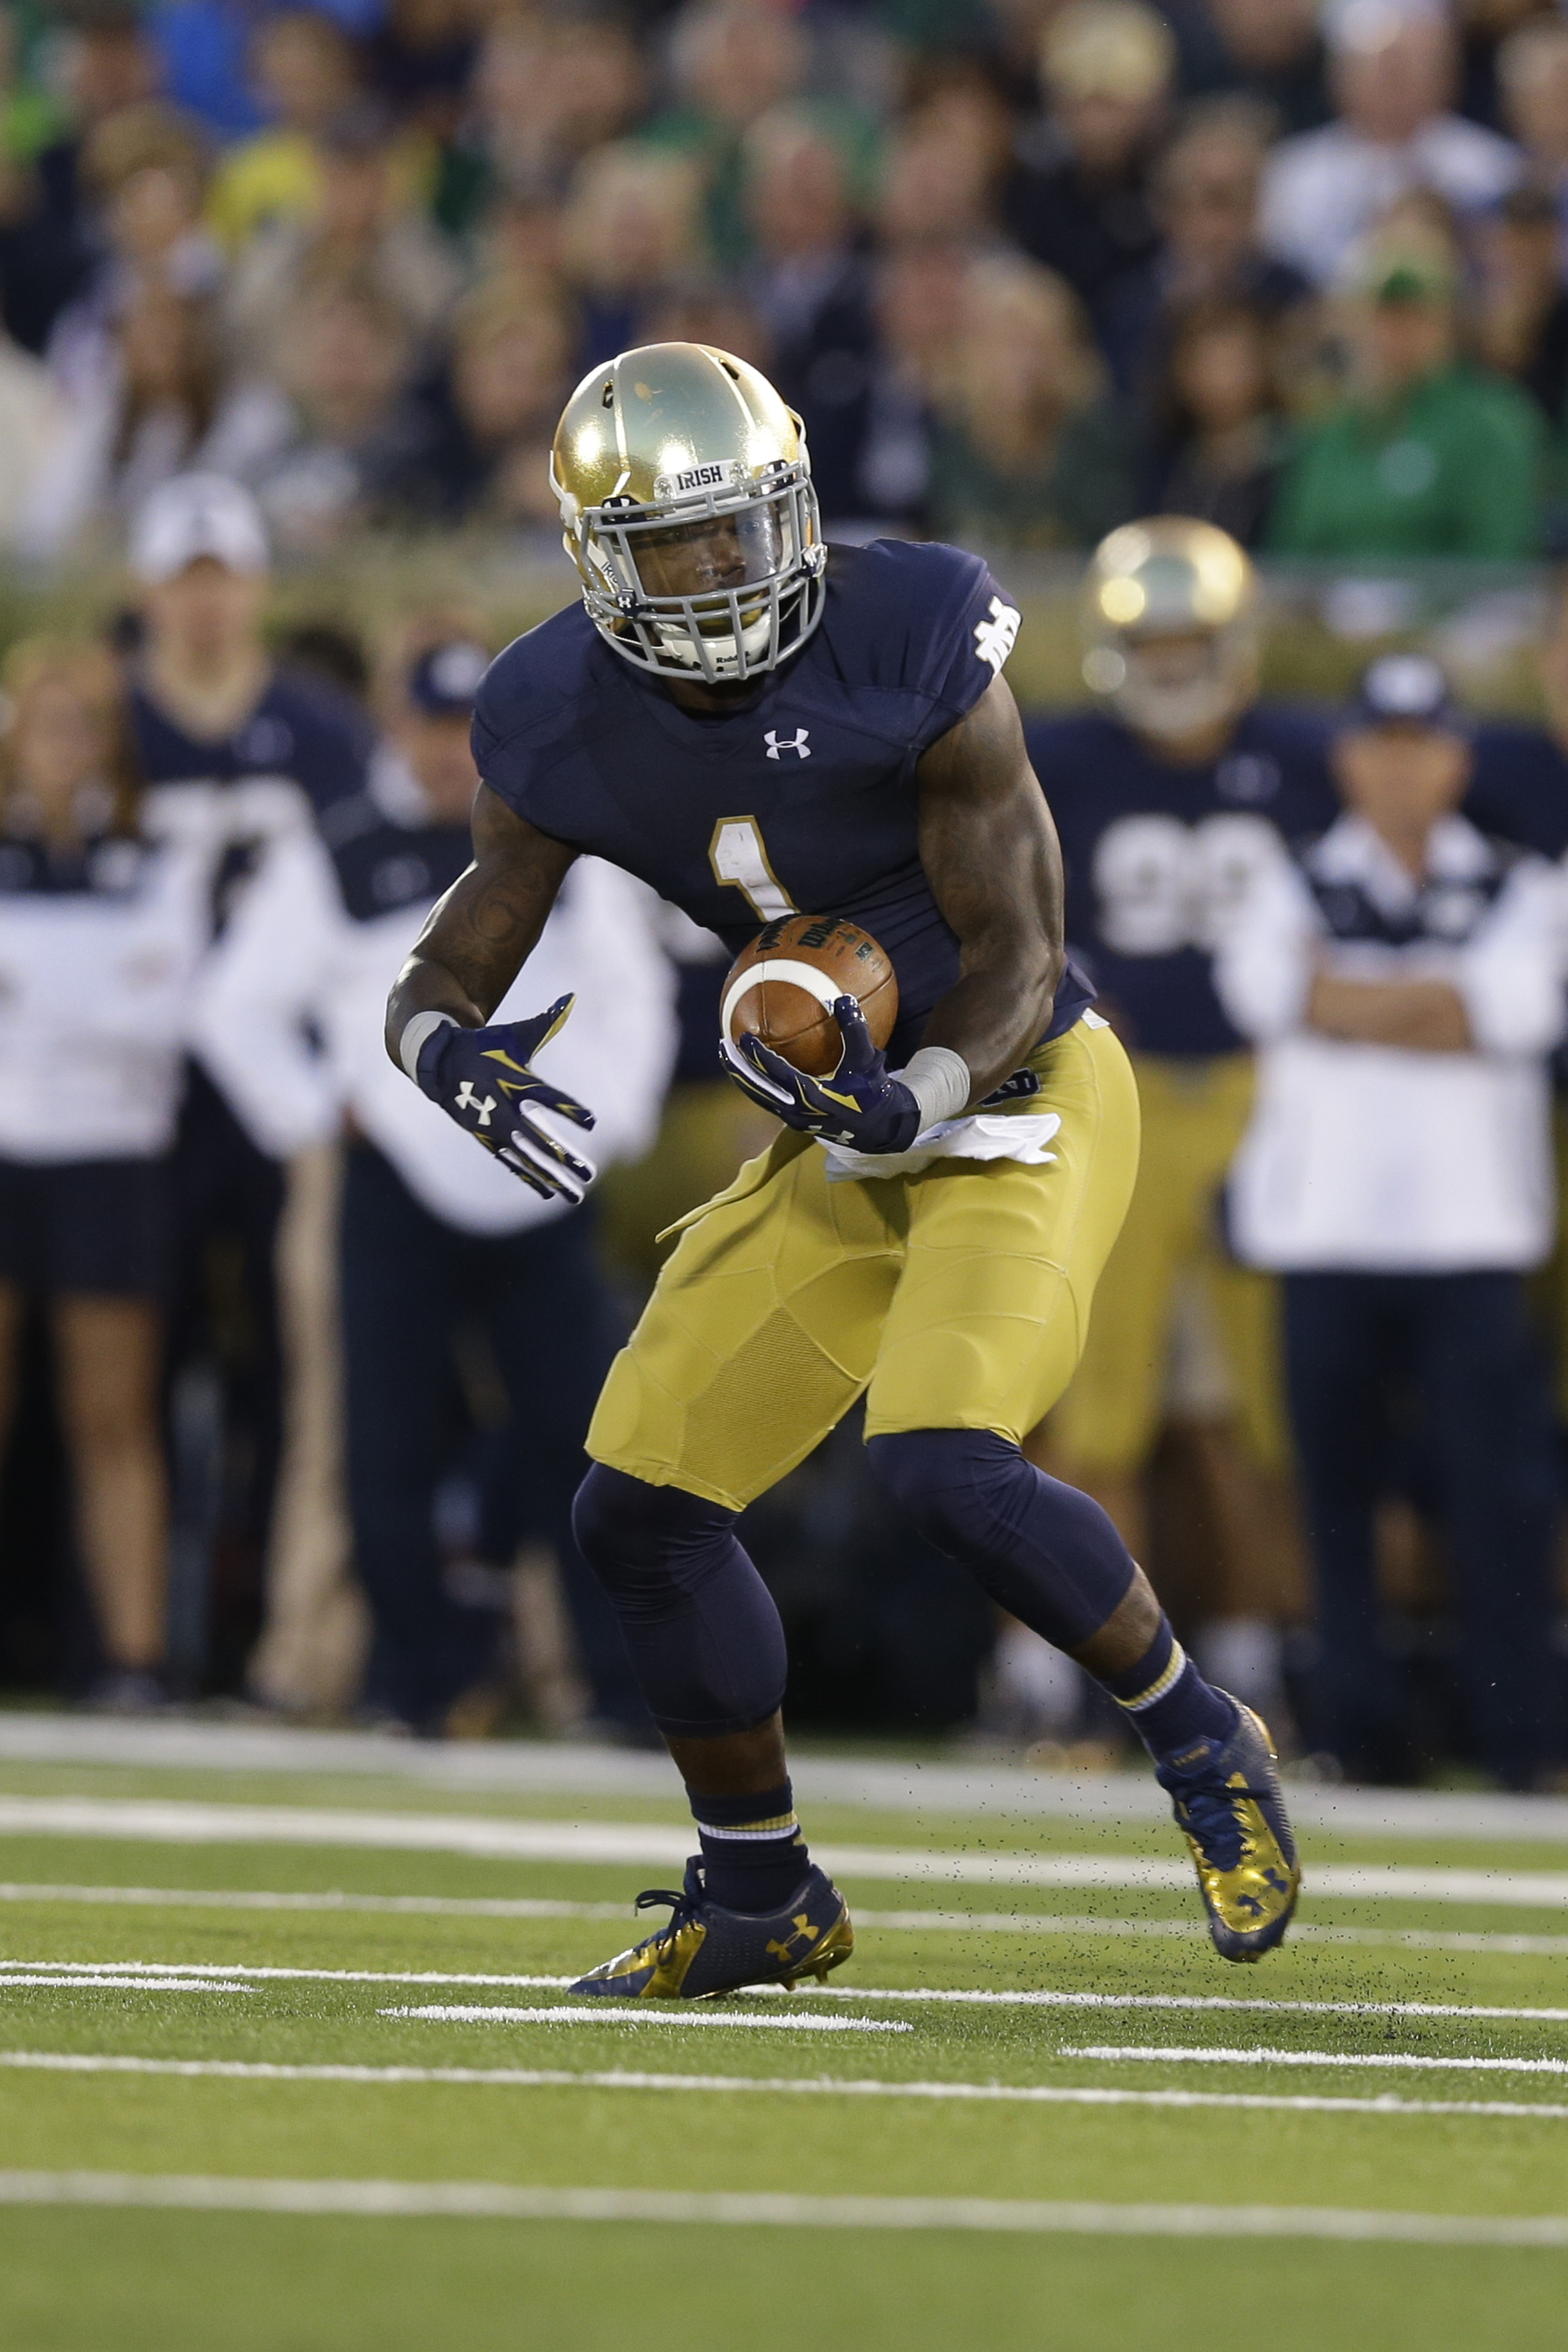 Notre Dame running back Greg Bryant during the first half of an NCAA college football game against Michigan in South Bend, Ind., Saturday, Sept. 6, 2014. (AP Photo/Michael Conroy)